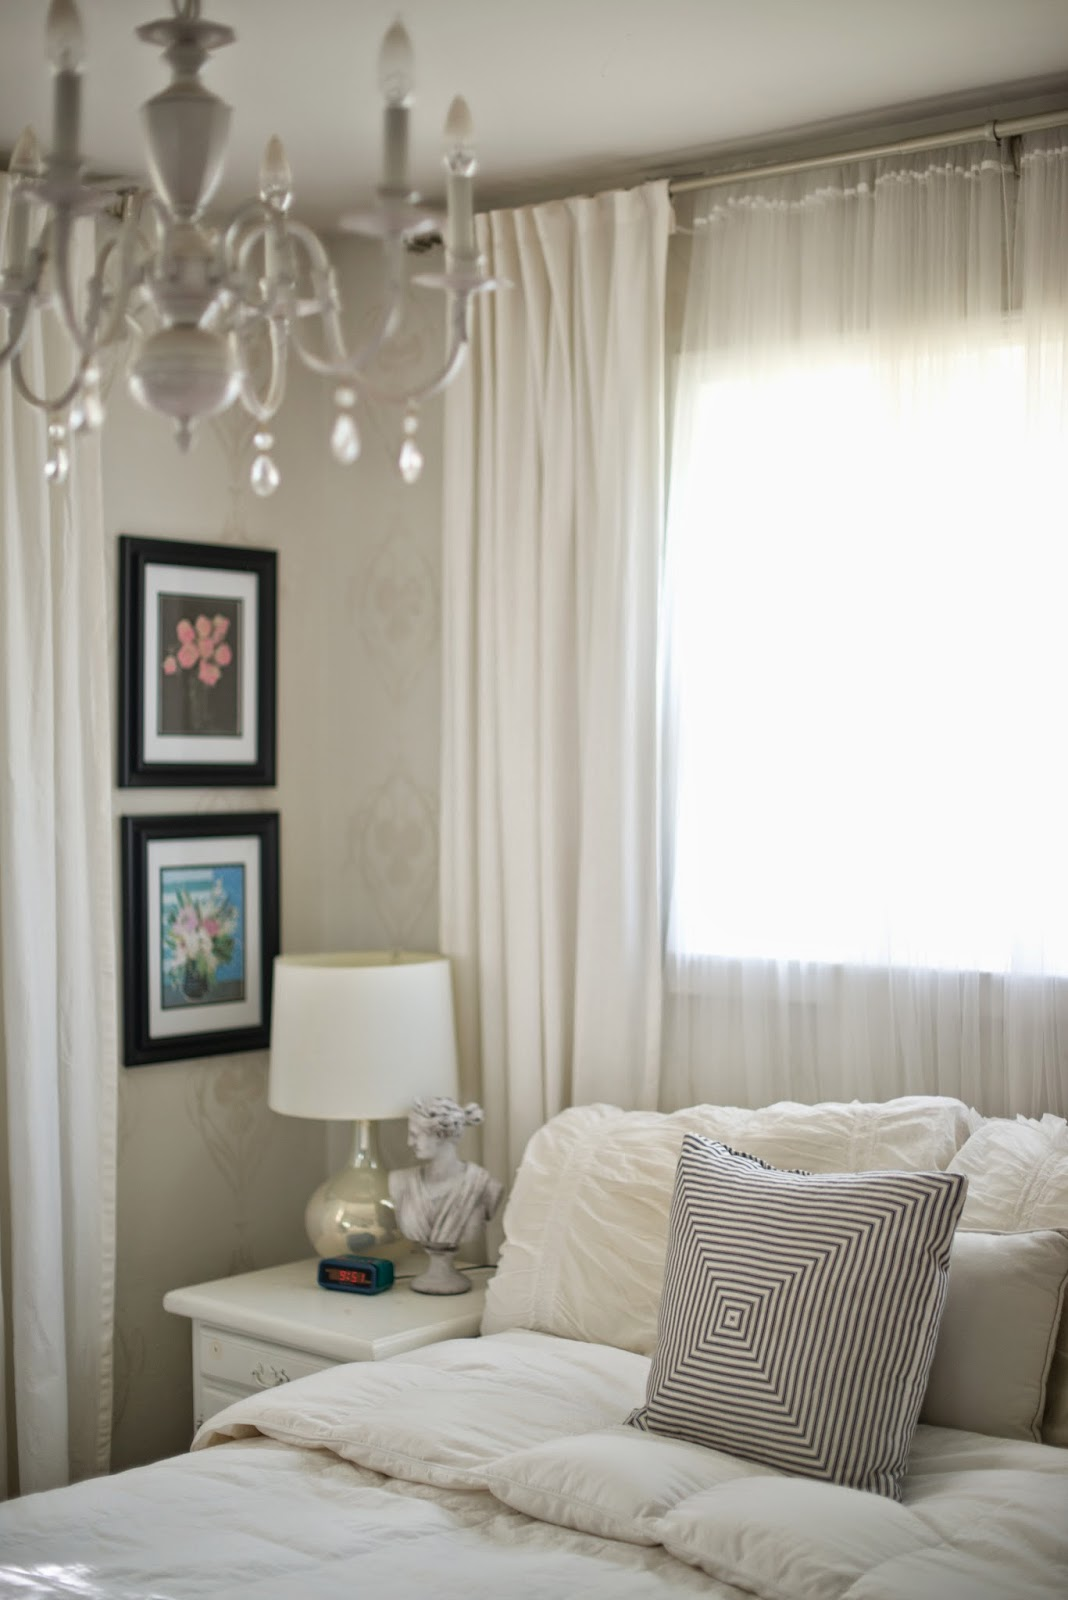 Domestic fashionista creating a quiet bedroom atmosphere for Fashionista bedroom ideas